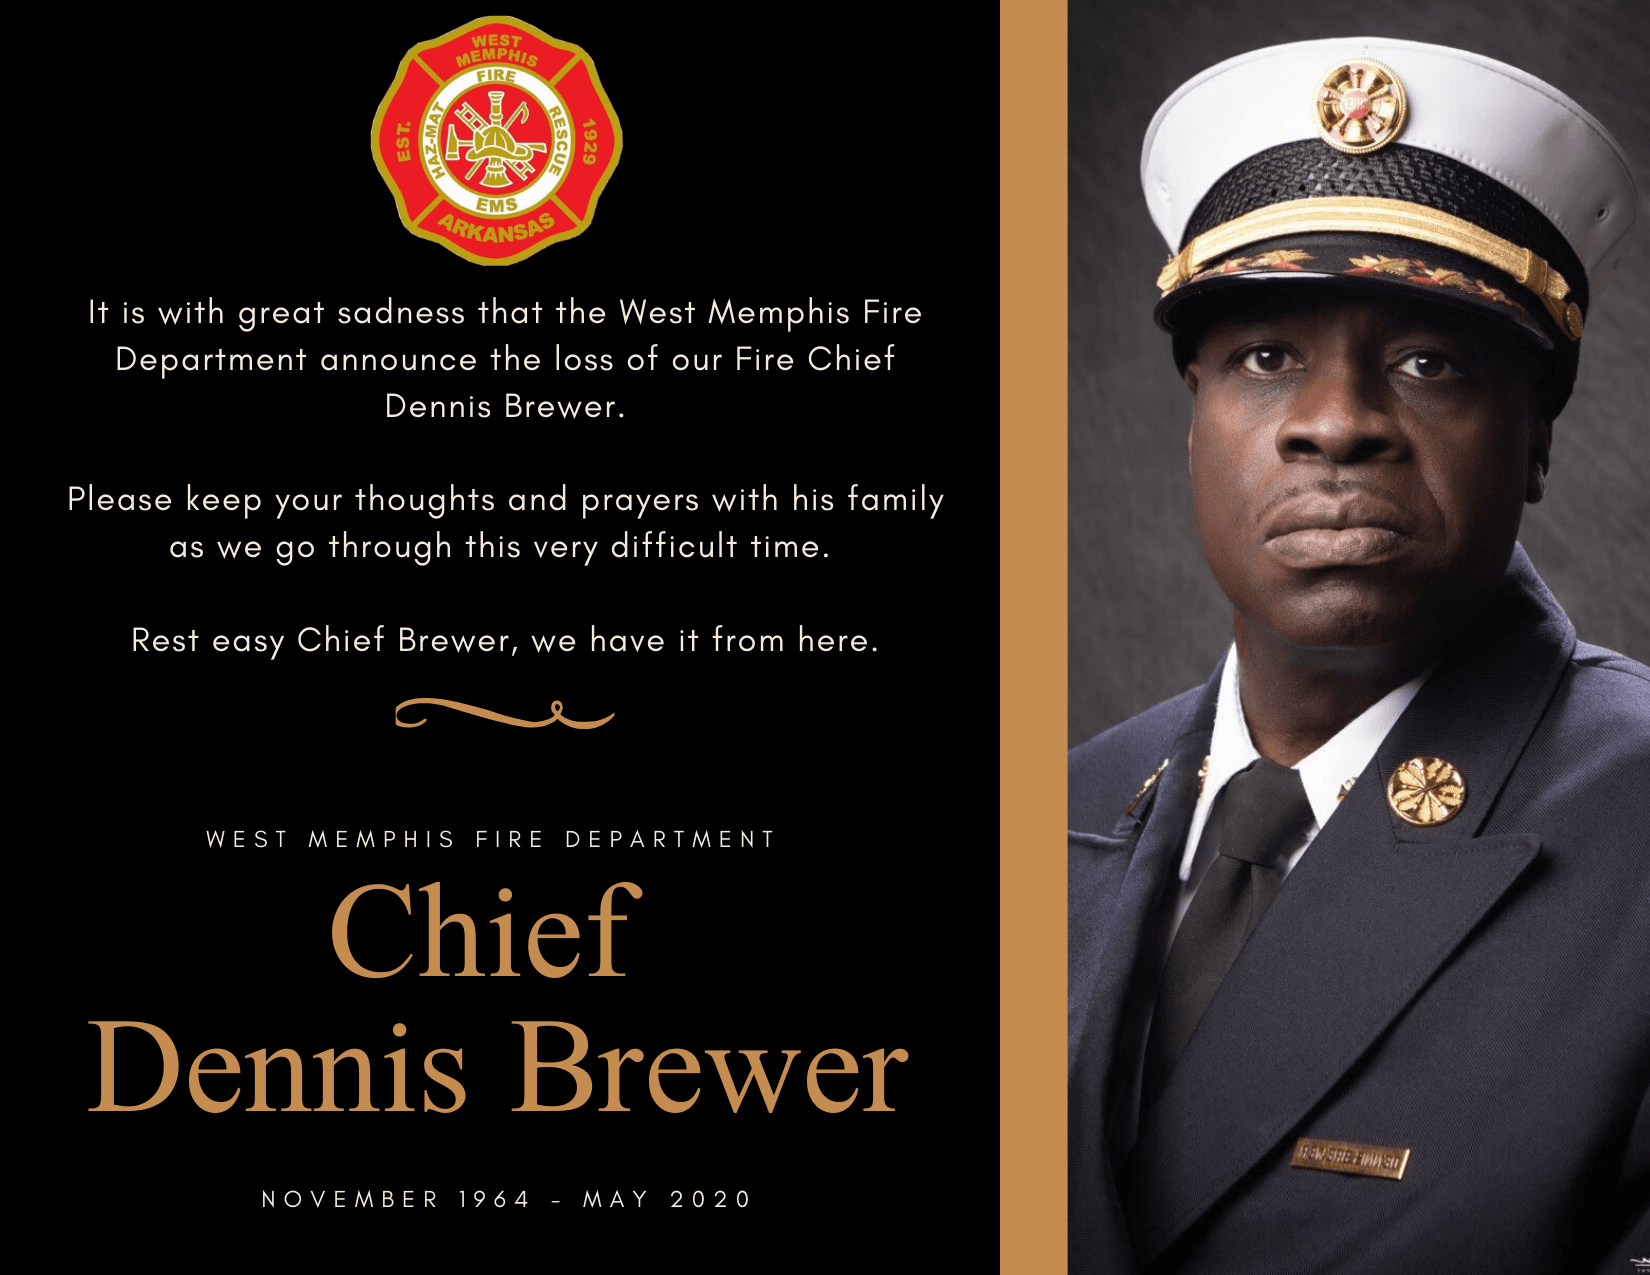 unexpected passing of Fire Chief Dennis Brewer.